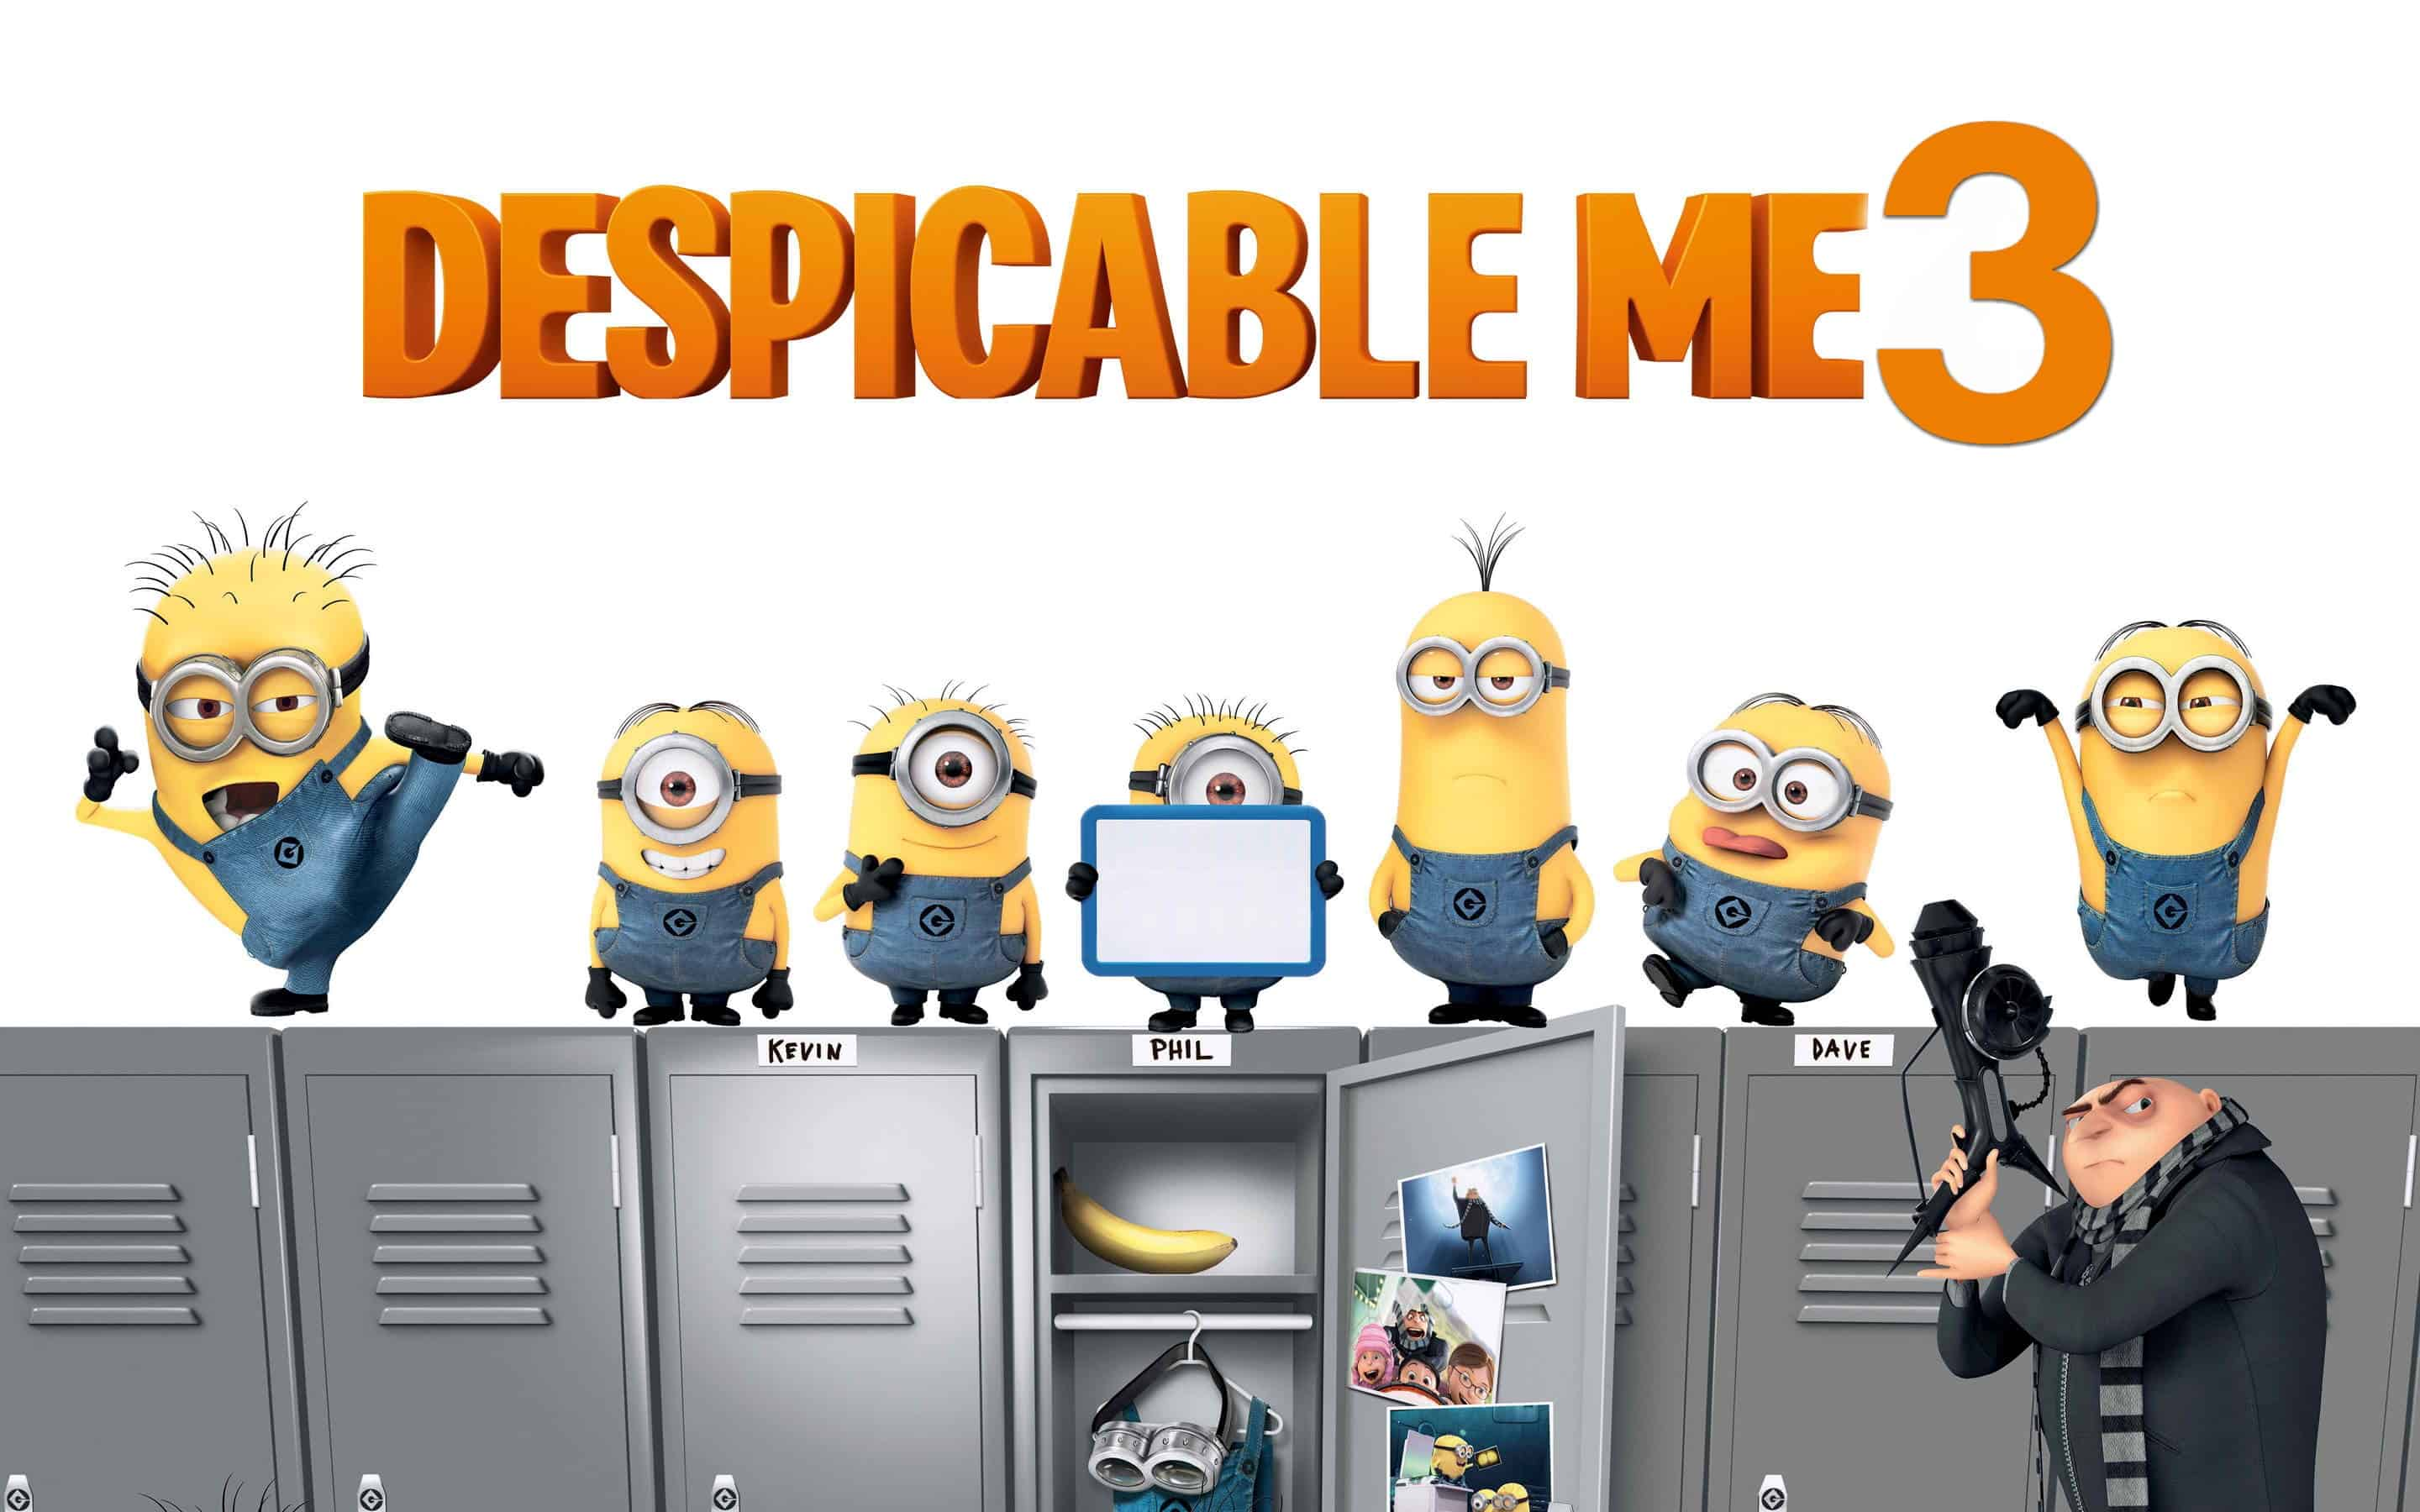 depicable-me-3